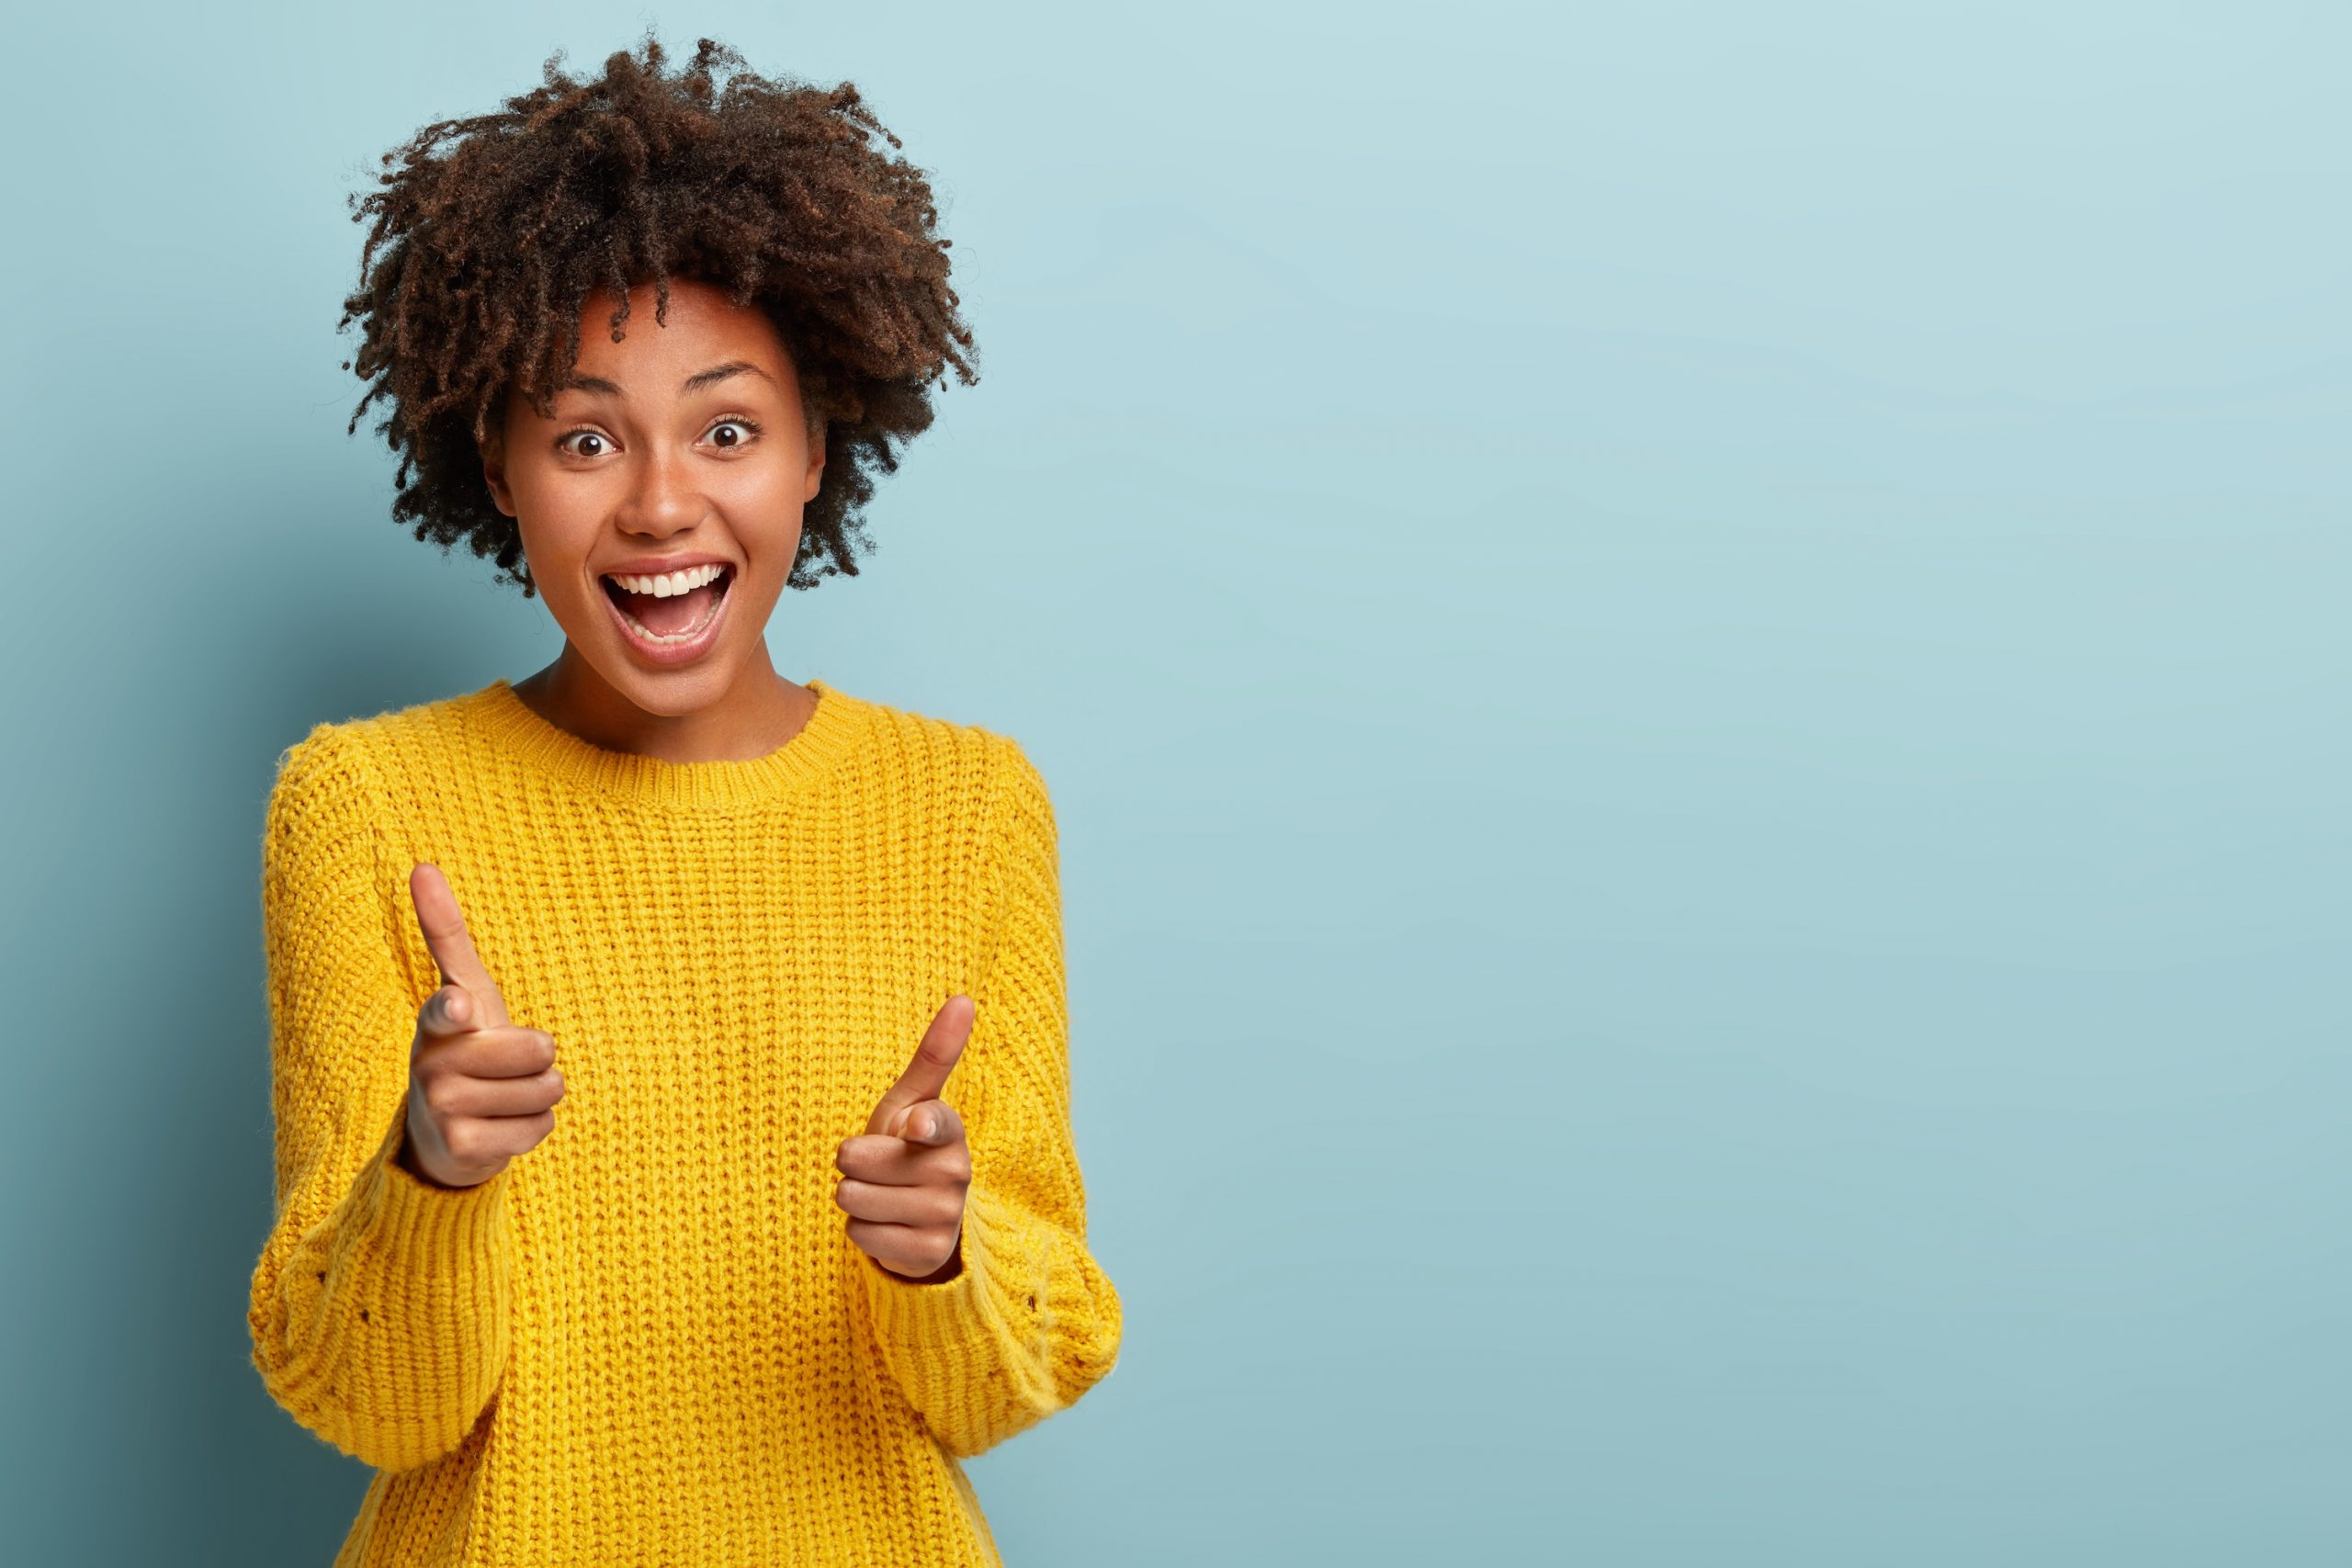 Outgoing carefree woman makes finger pistols, points directly at camera with positive expression, says I choose you, wears casual outfit, stands over blue wall with blank space area. You are my type